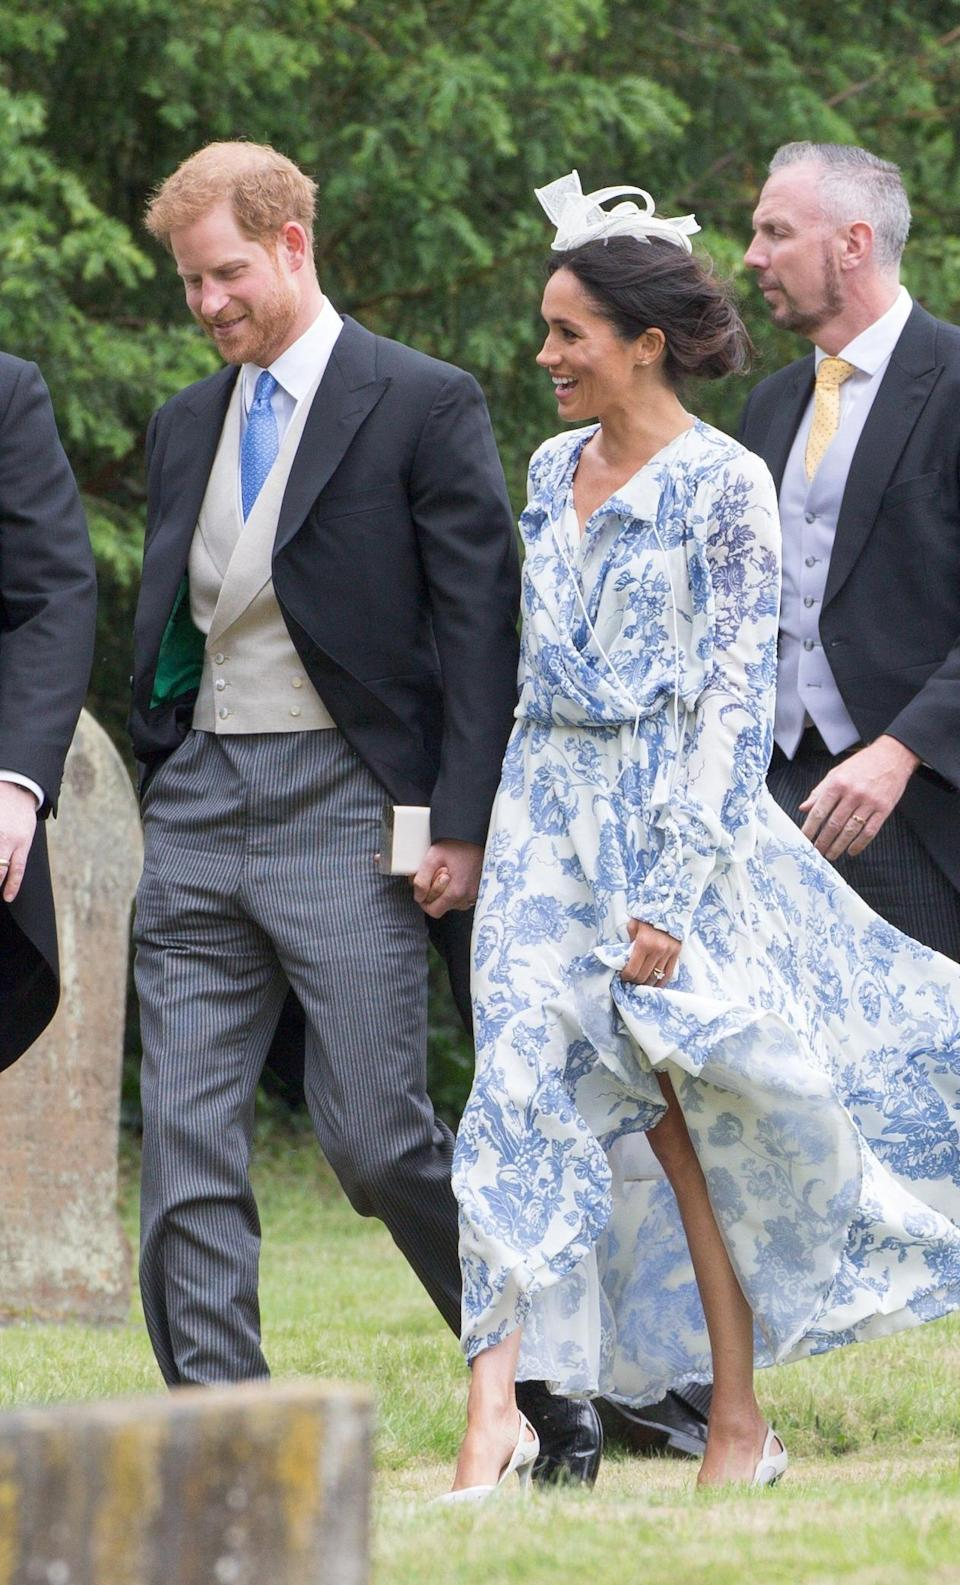 Prince Harry and Meghan Markle were pictured making their way into the church. Photo: Splash News